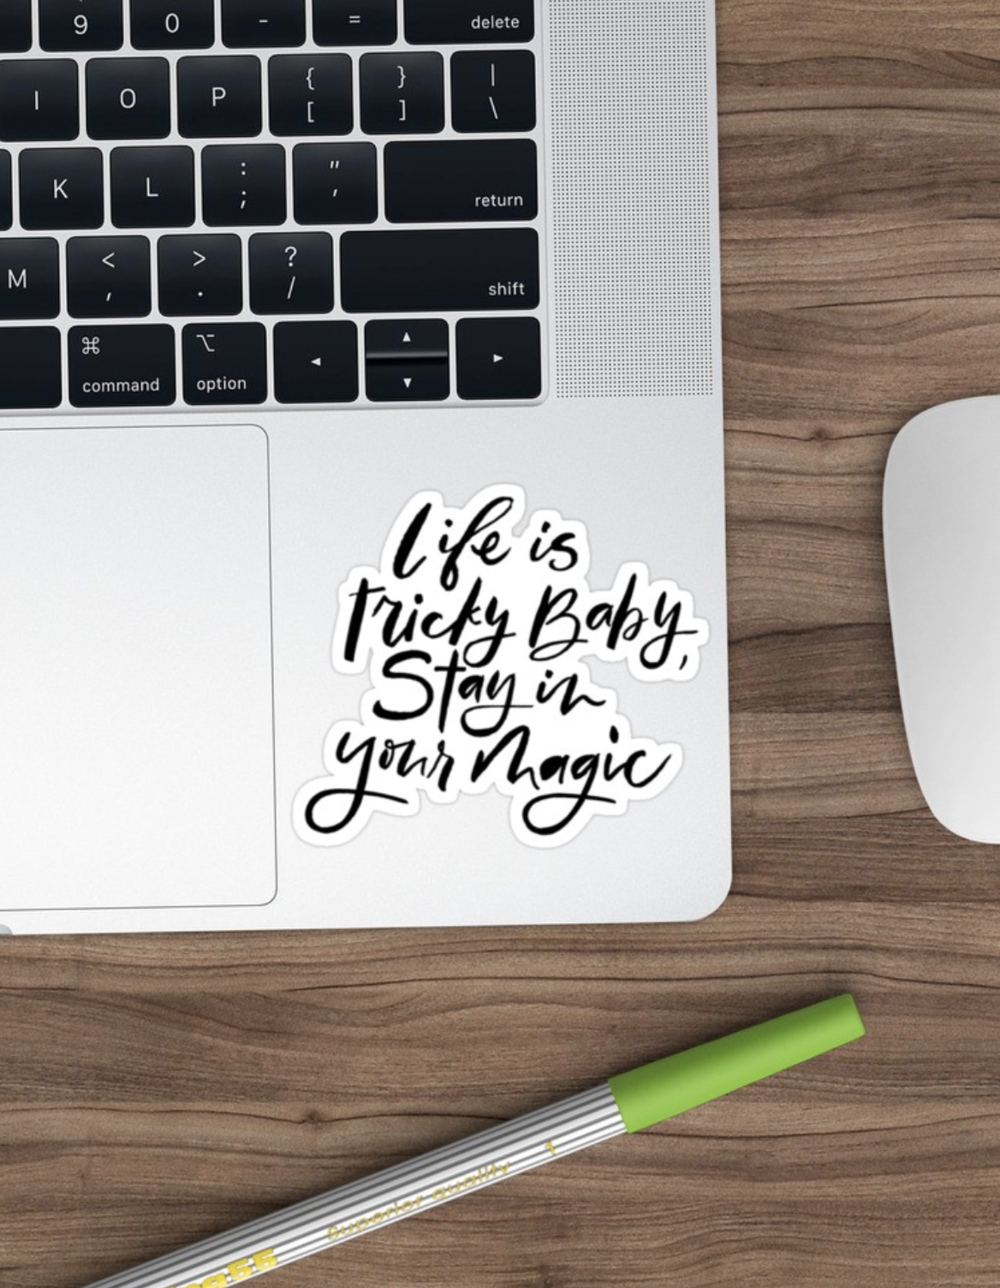 Life is tricky baby, stay in your magic stickers available on  Redbubble .